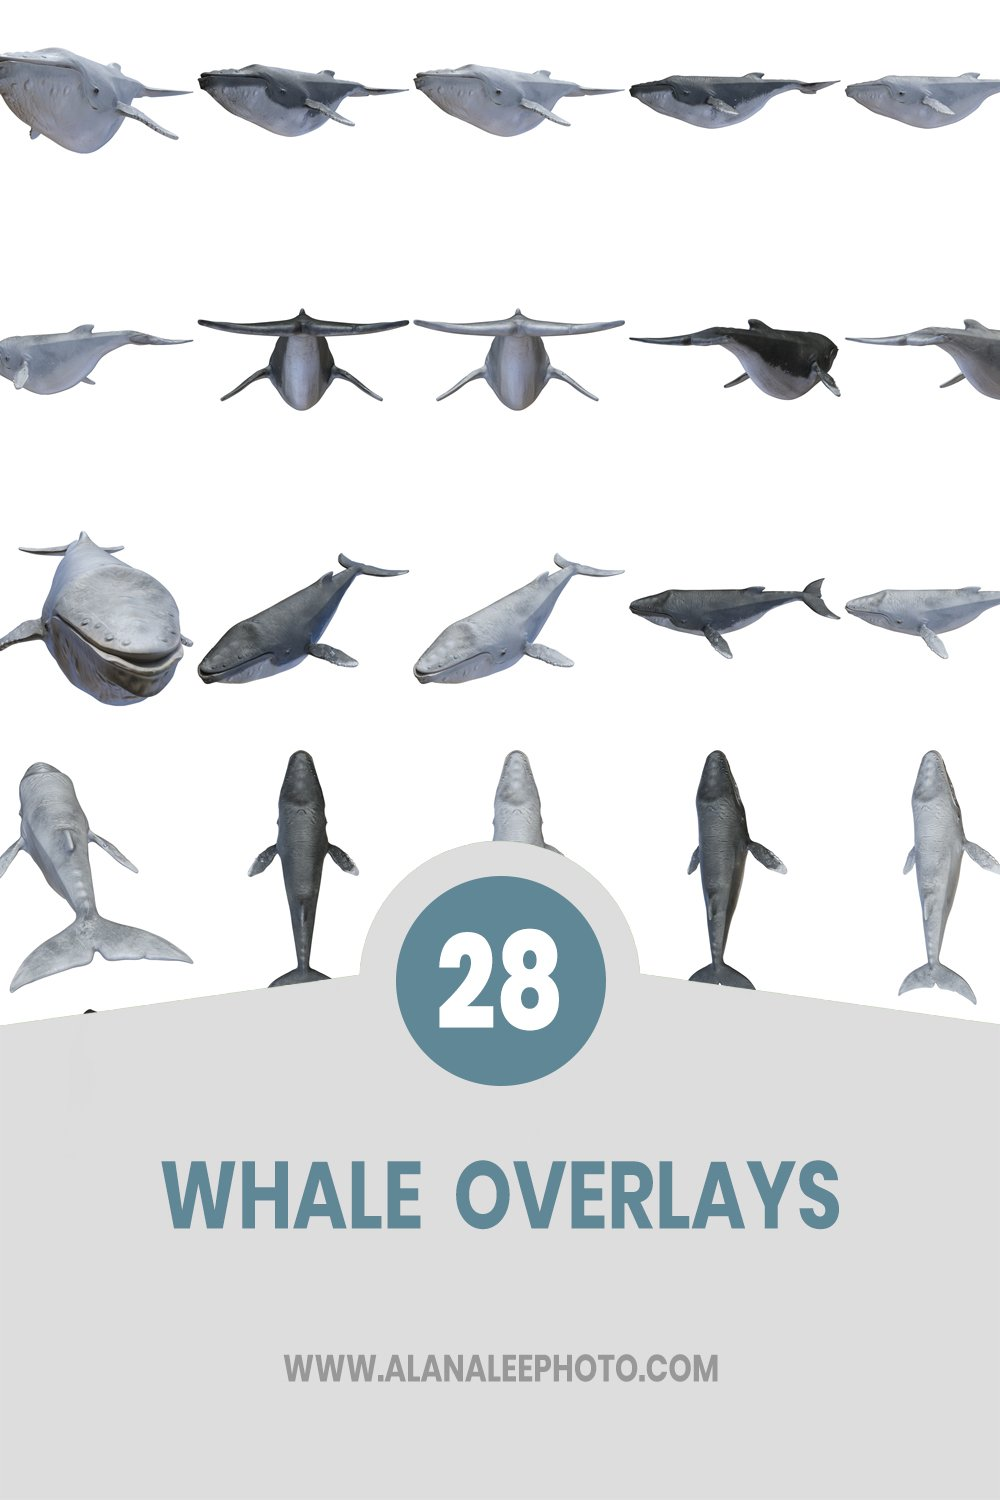 whale overlays with transparent backgrounds for photoshop and digital art